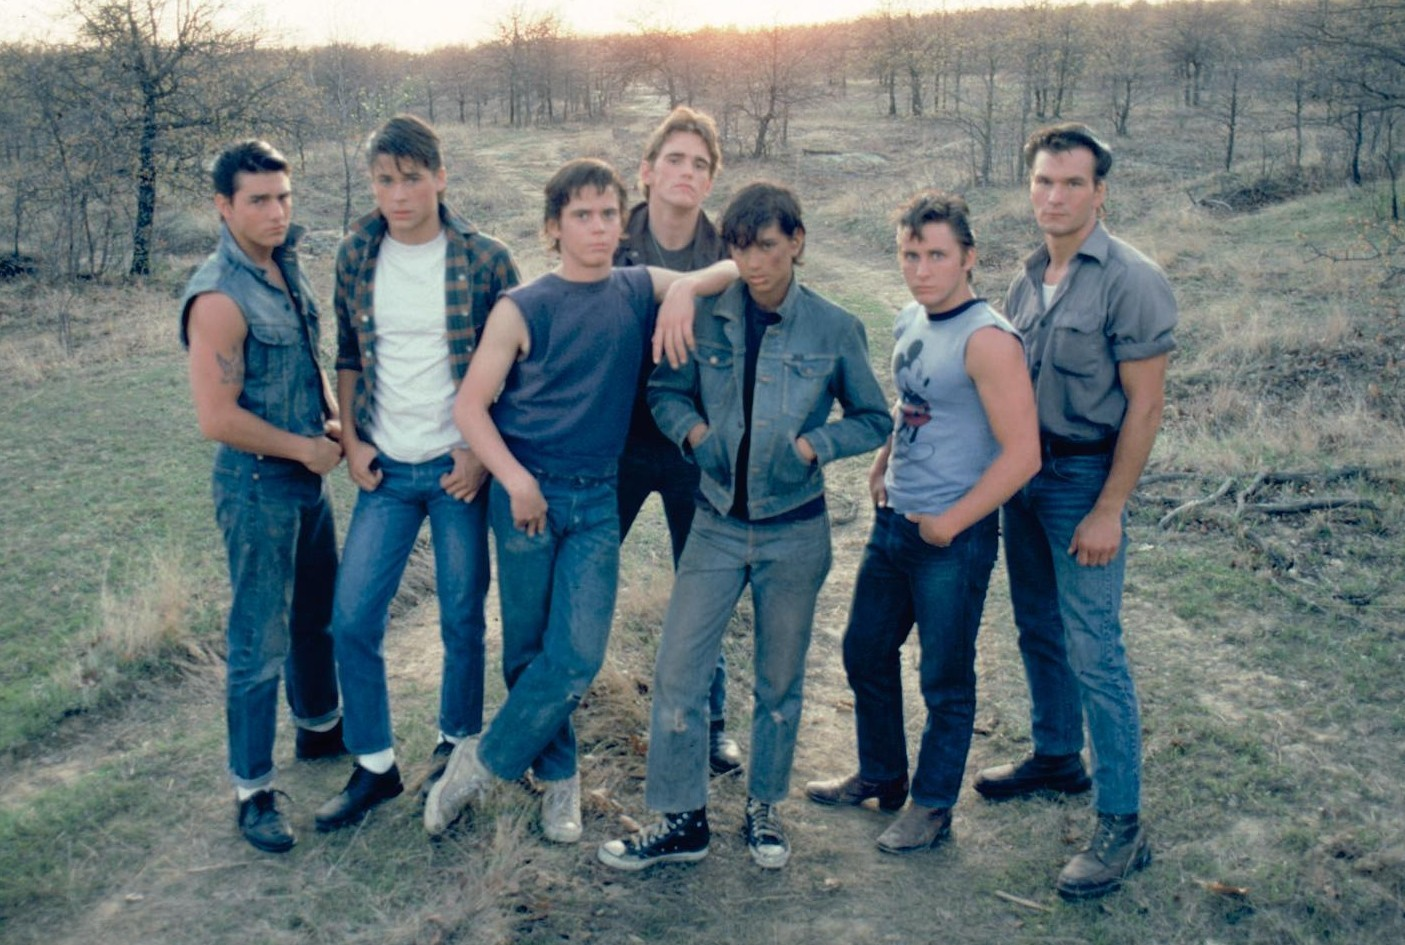 Sources: The Outsiders, Behind the Scenes & American Icons ; Image ...